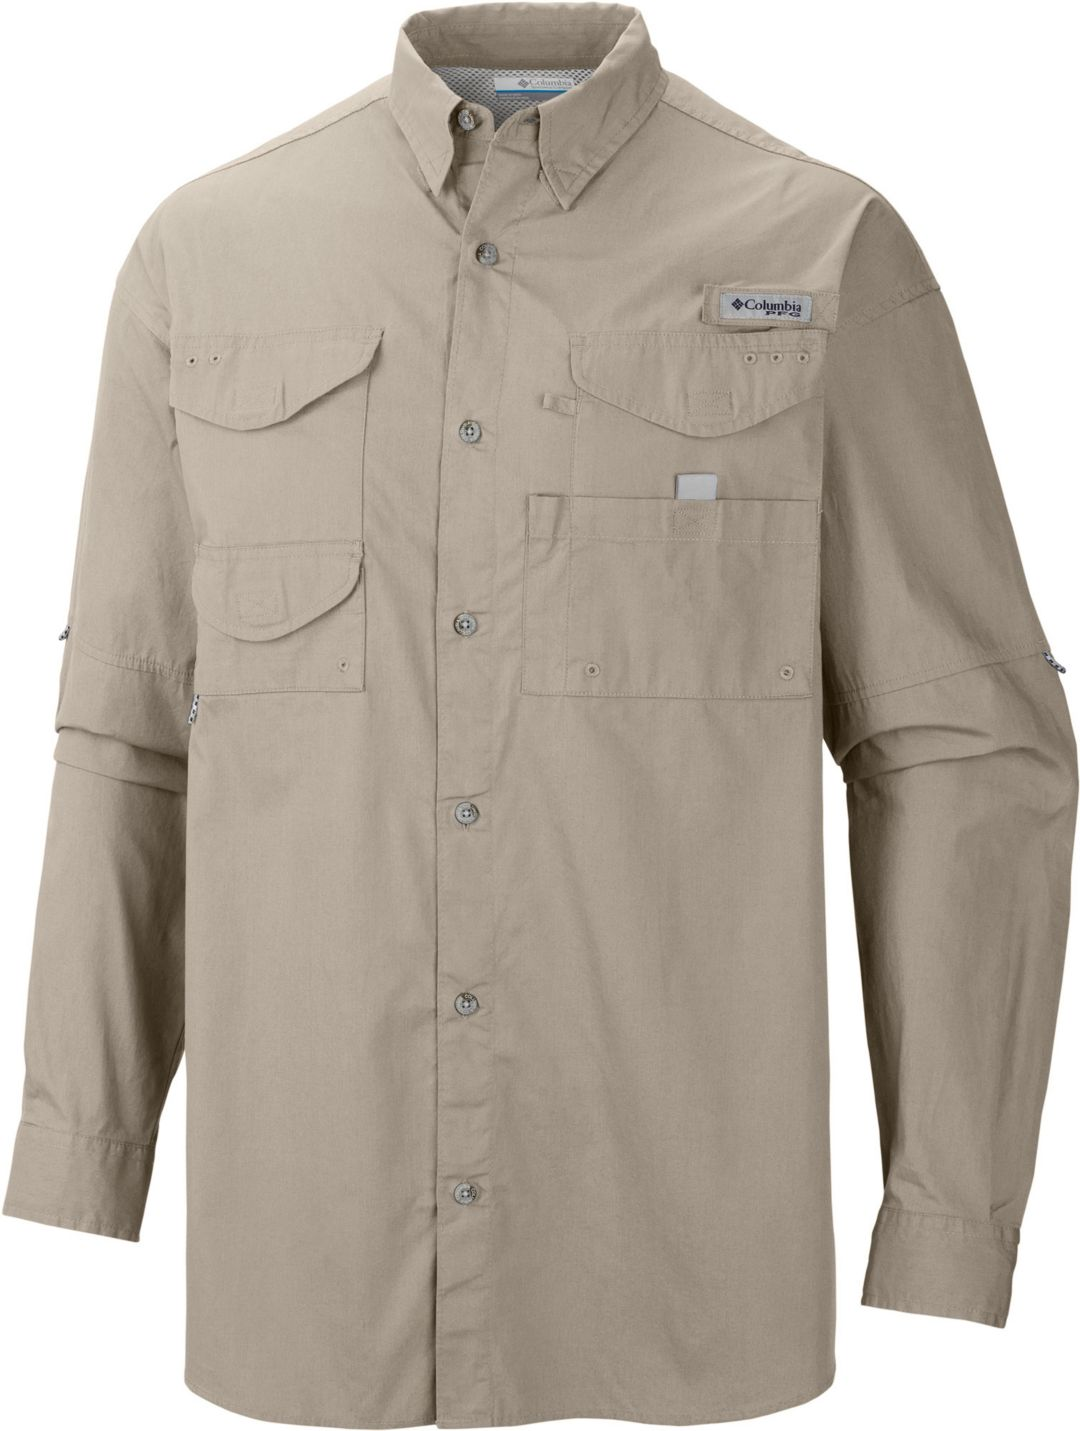 27a49cdc Columbia Men's PFG Bonehead Long Sleeve Shirt | Field & Stream